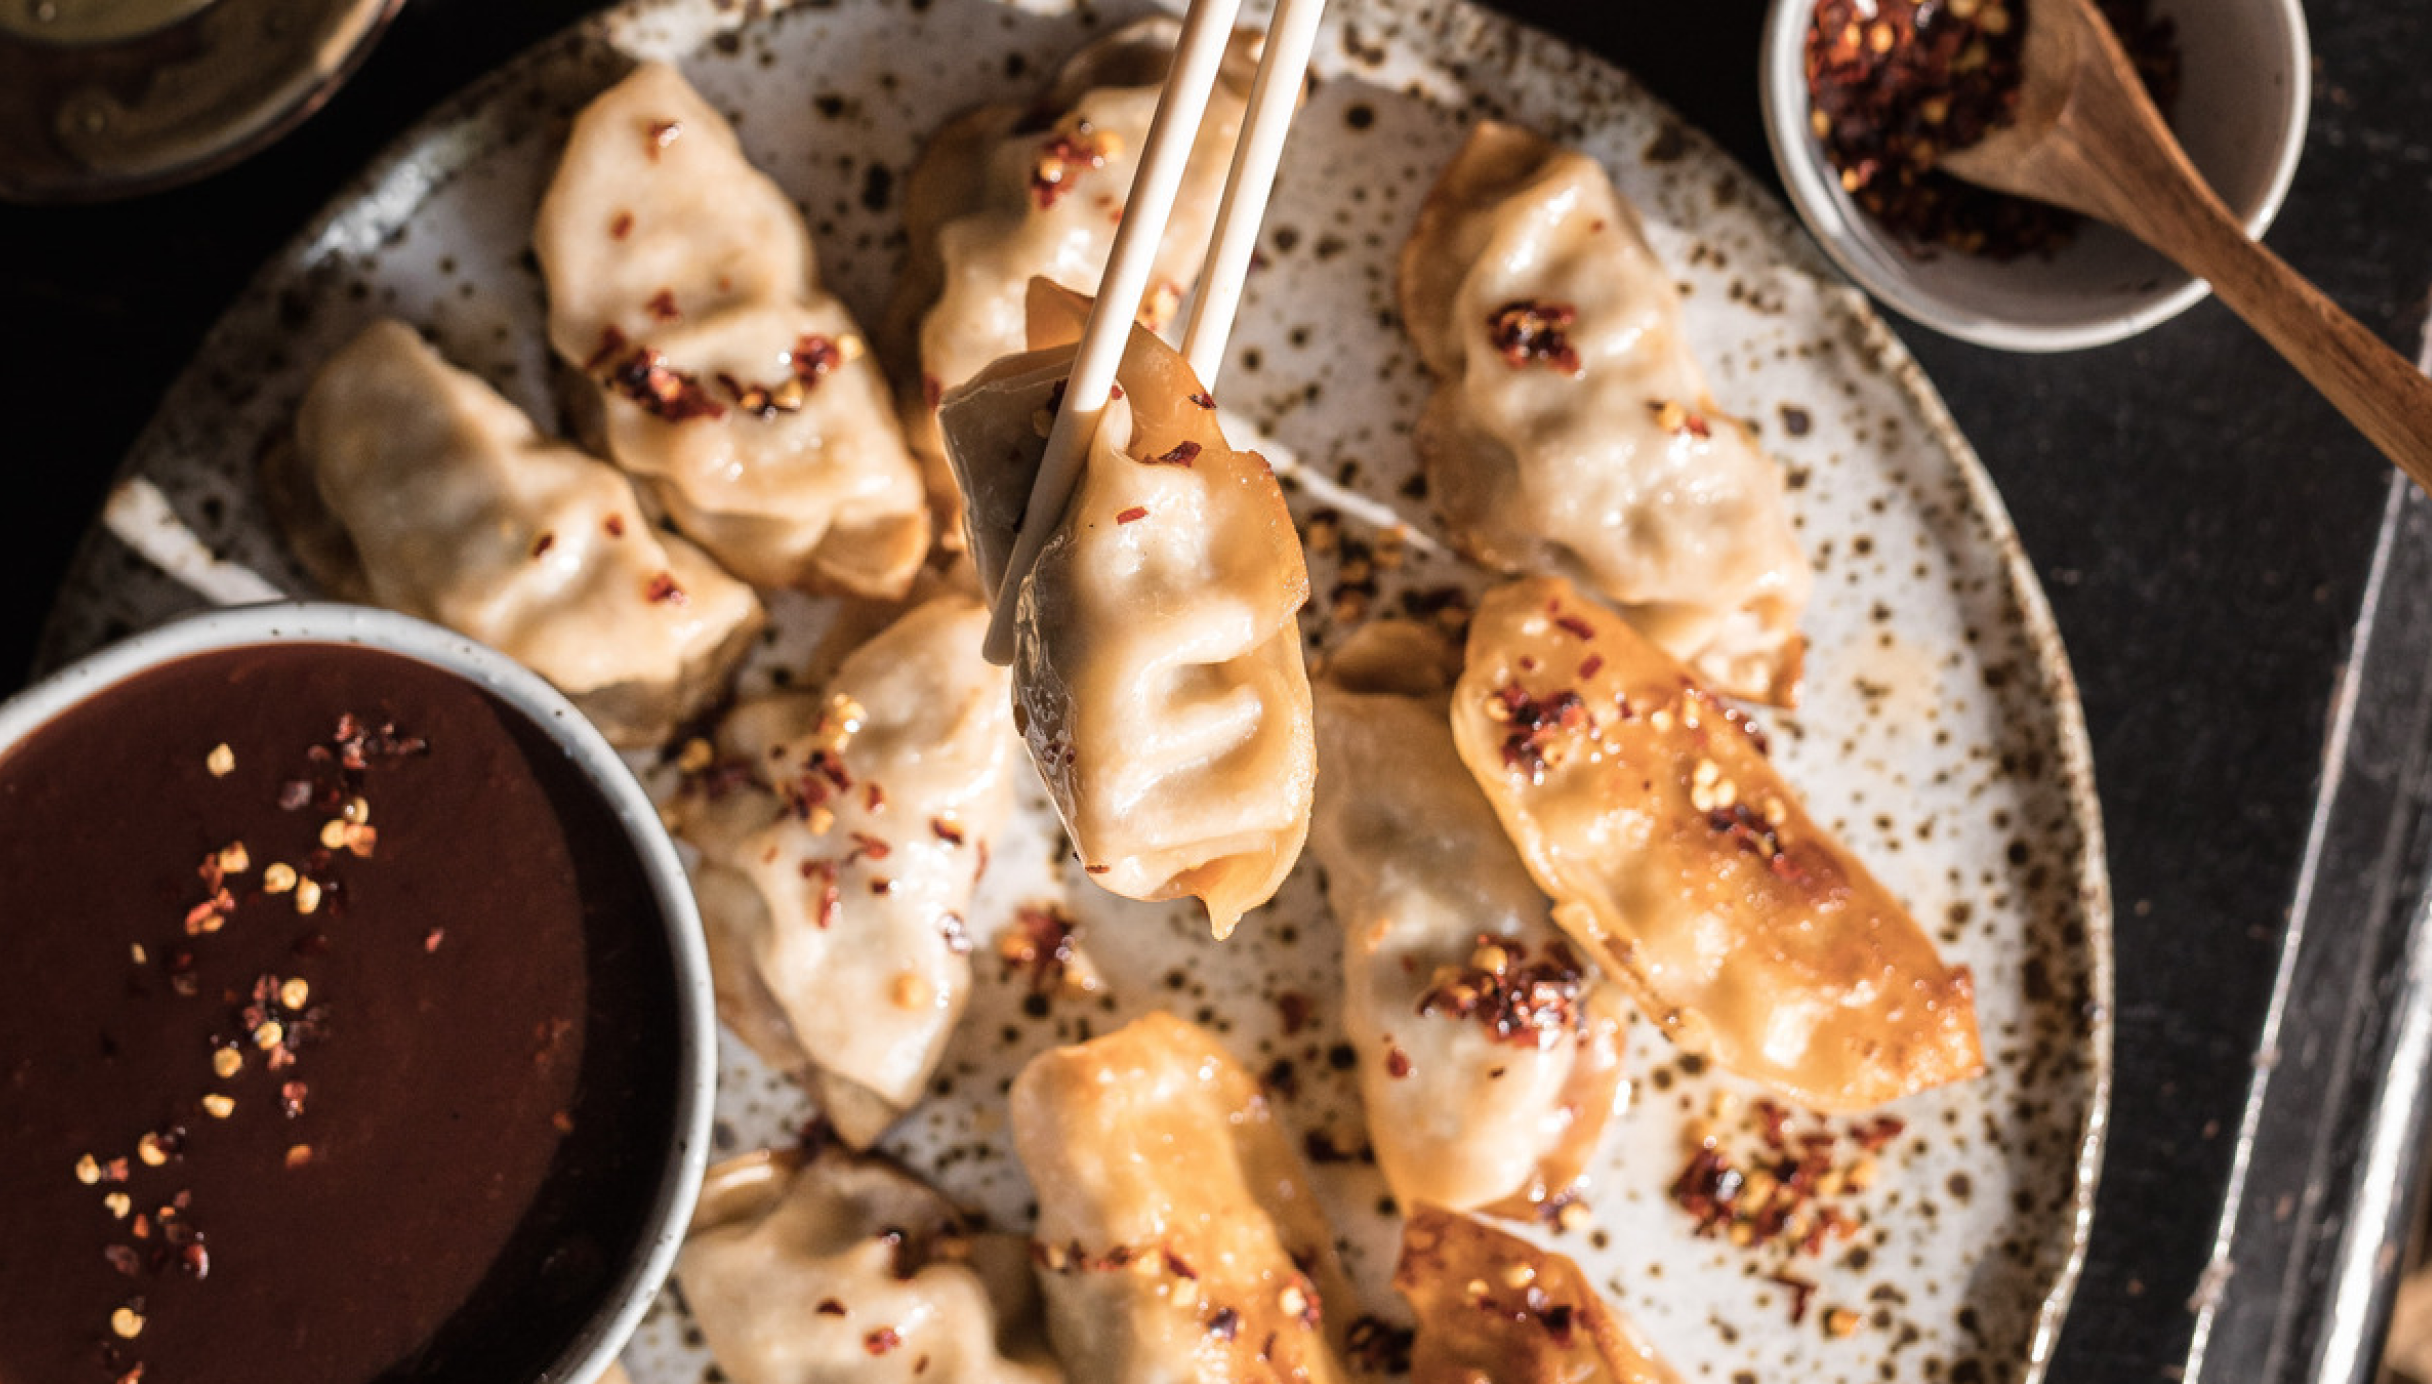 Dumplings being held by chopsticks, about to be dipped into plum sauce